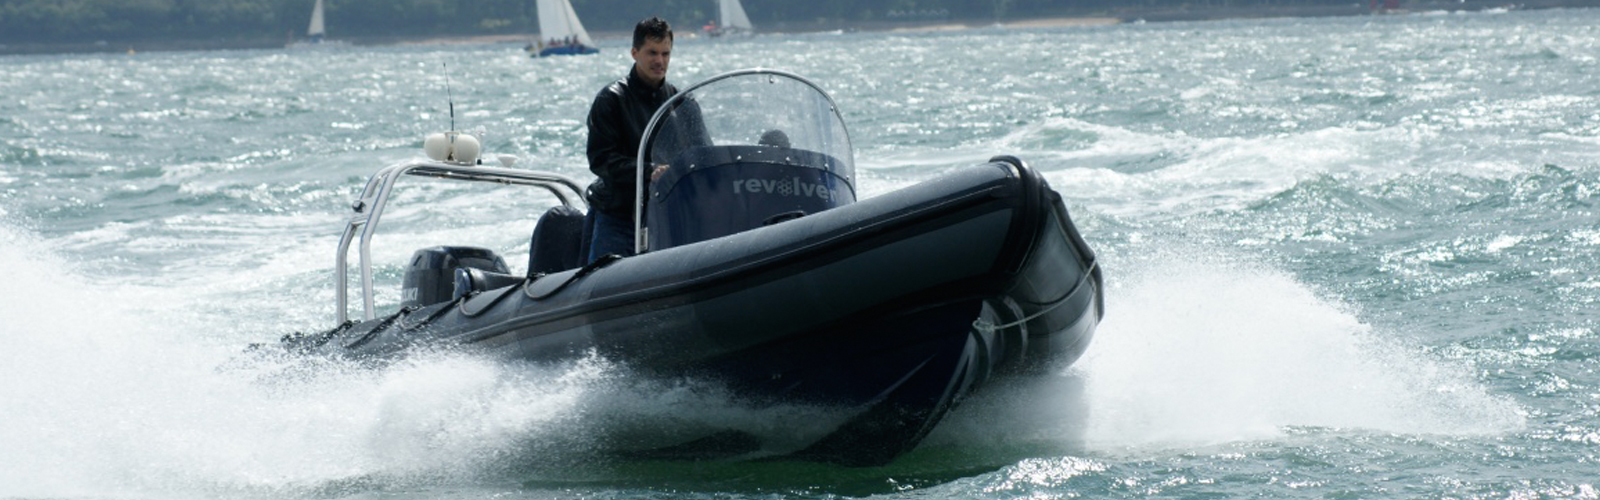 Power Boating on a rib on the solent